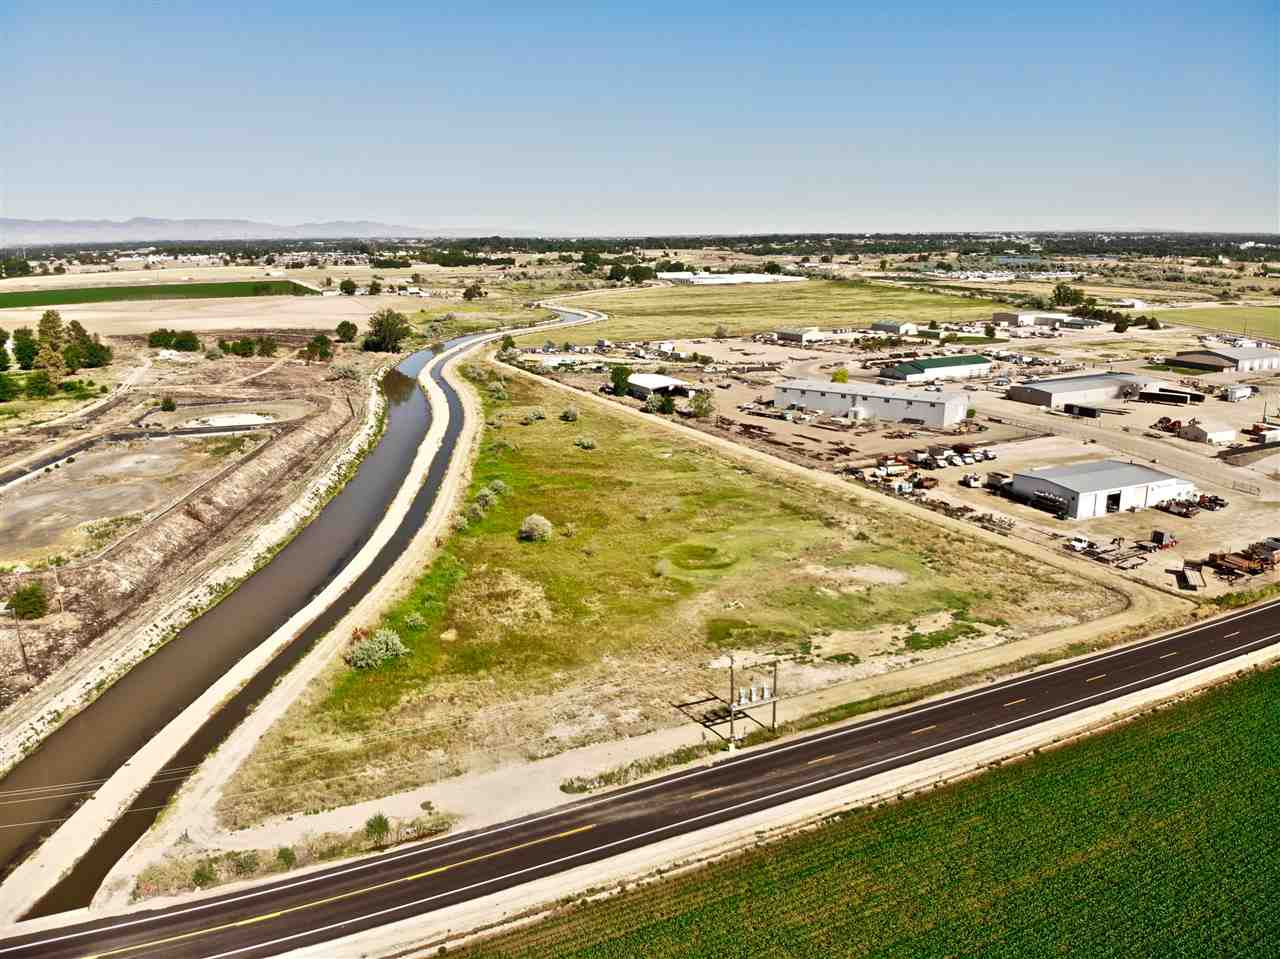 Fantastic opportunity for easy I-84 freeway and Hwy 20-26 access. Located in the City Impact area with possible Commercial or Light Industrial rezone. Approx a total of 91.18+/- acres in this immediate area available to create larger or even possibly smaller parcels for your needs. Currently zoned Ag. City sewer is located in the street and city water is across Hwy 20-26. Call for details.